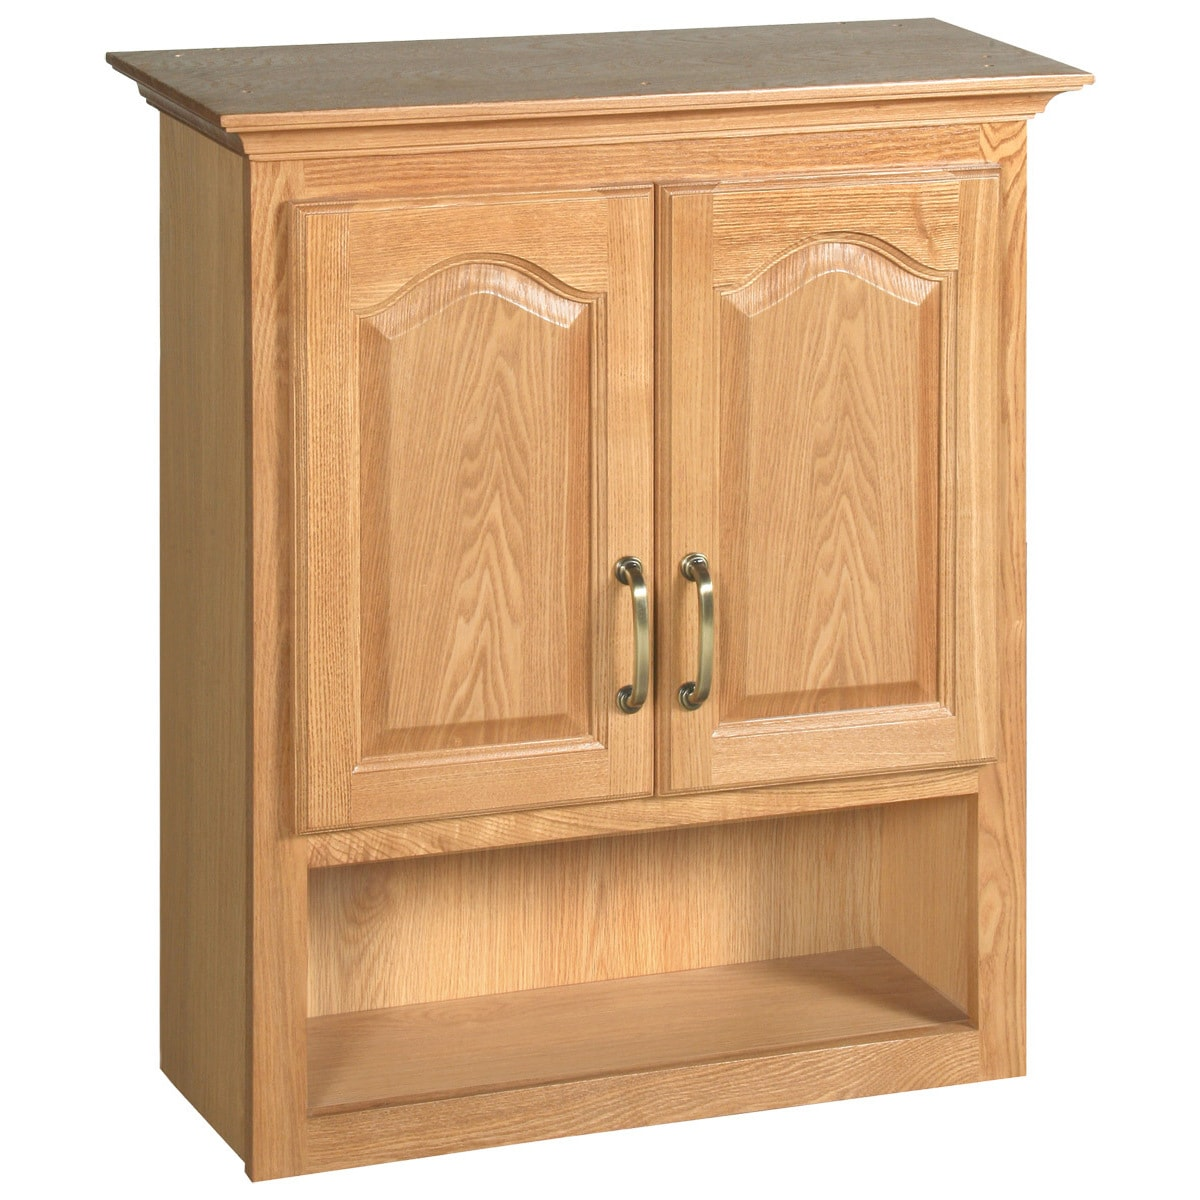 lowes cabinets also full glass bathrooms cabinet wood picture oak phenomenal wall with sauder size com doorsskets of at bathroom white ideas shopthroom